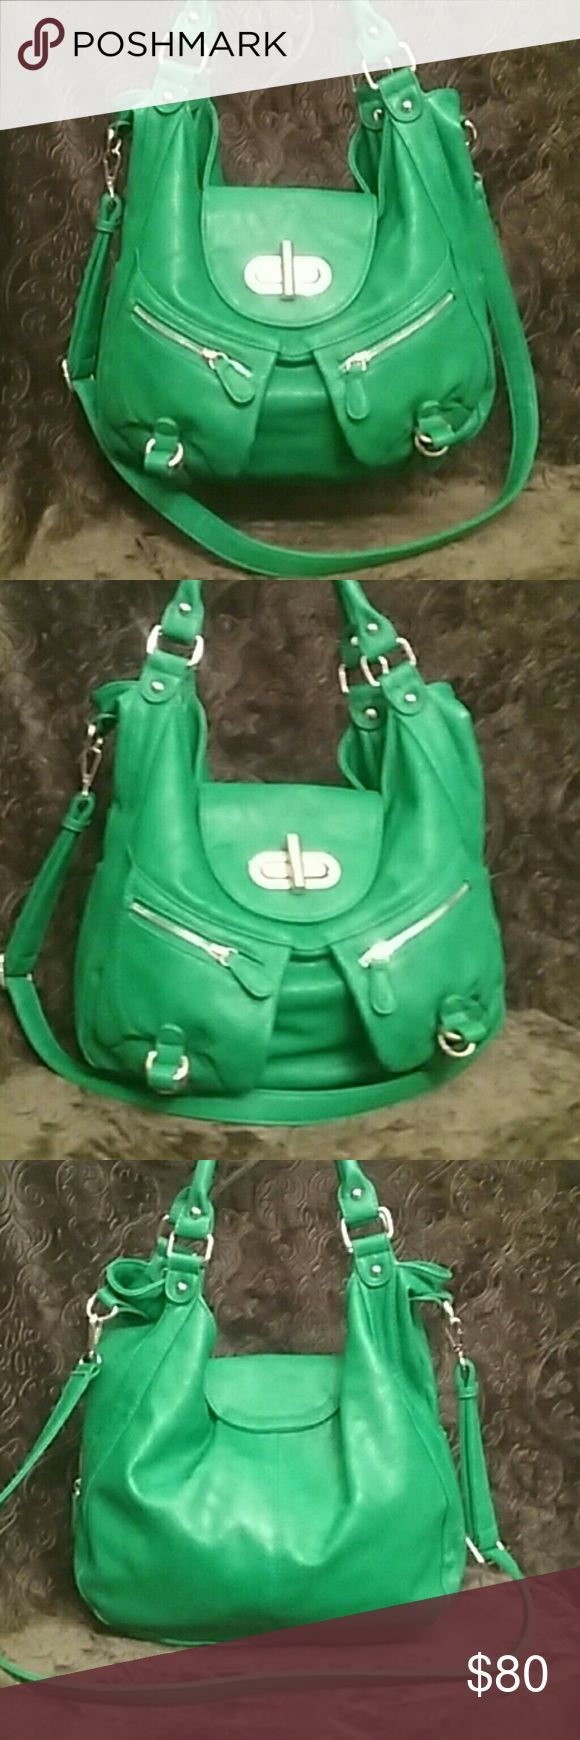 Melie Bianco Expandable Vegan Handbag - NWOT Authentic Melie Bianco Alyssa Expandable Purse. Emerald green, vegan leather hanbag, crossbody strap, lots of space extra large, outside zips open for even larger look and space. Very unique and popular bag. New without tags! Melie Bianco Bags Crossbody Bags